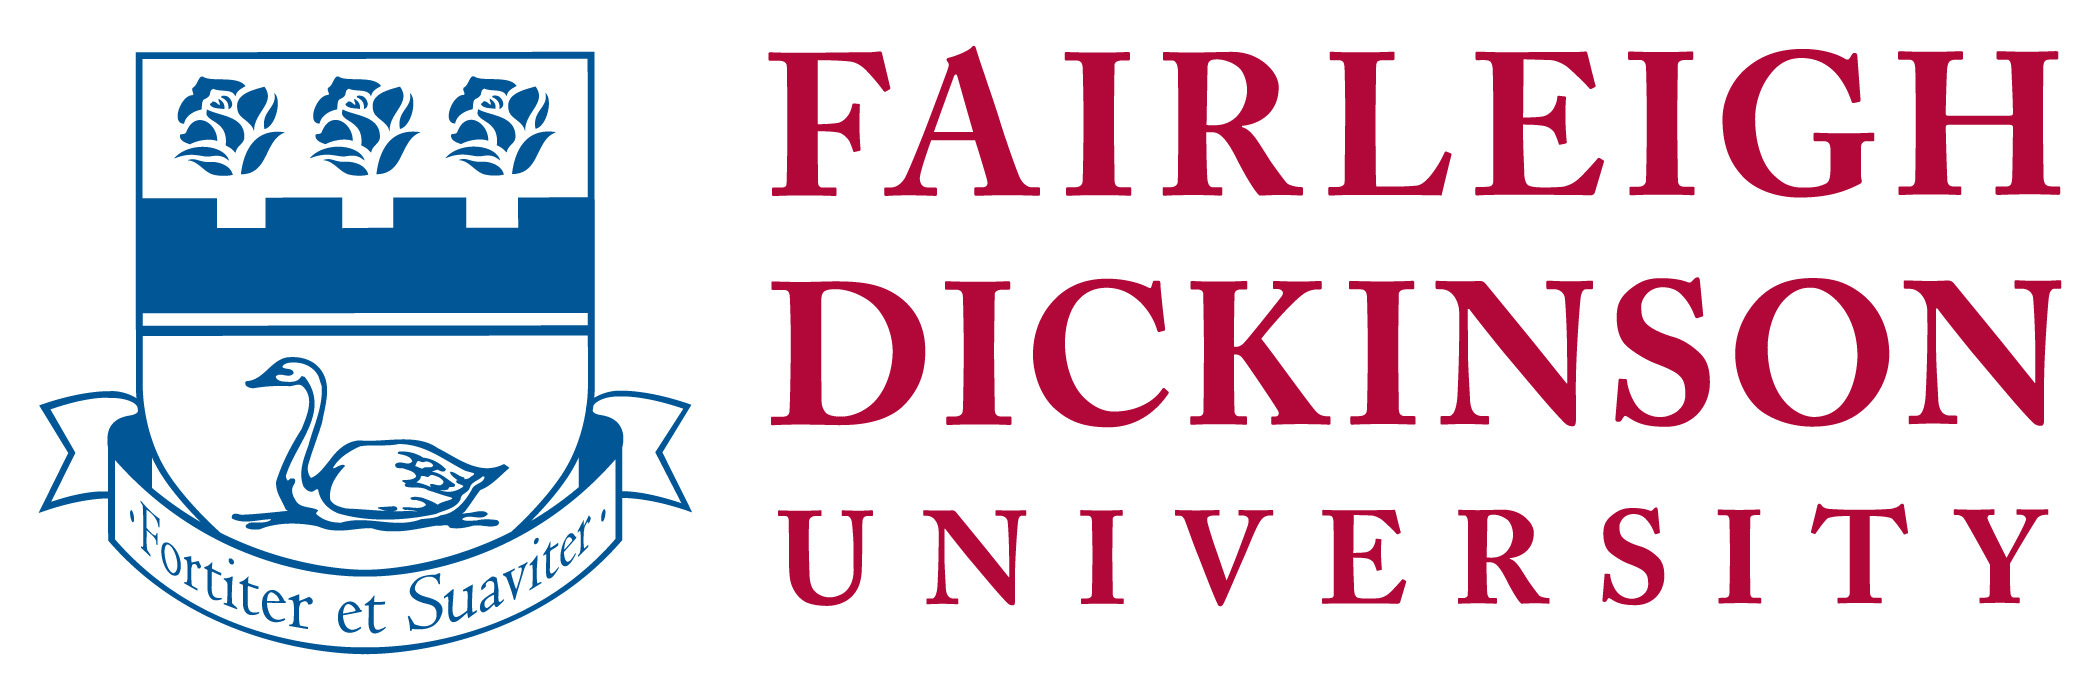 Fairleigh Dickinson University (FDU)